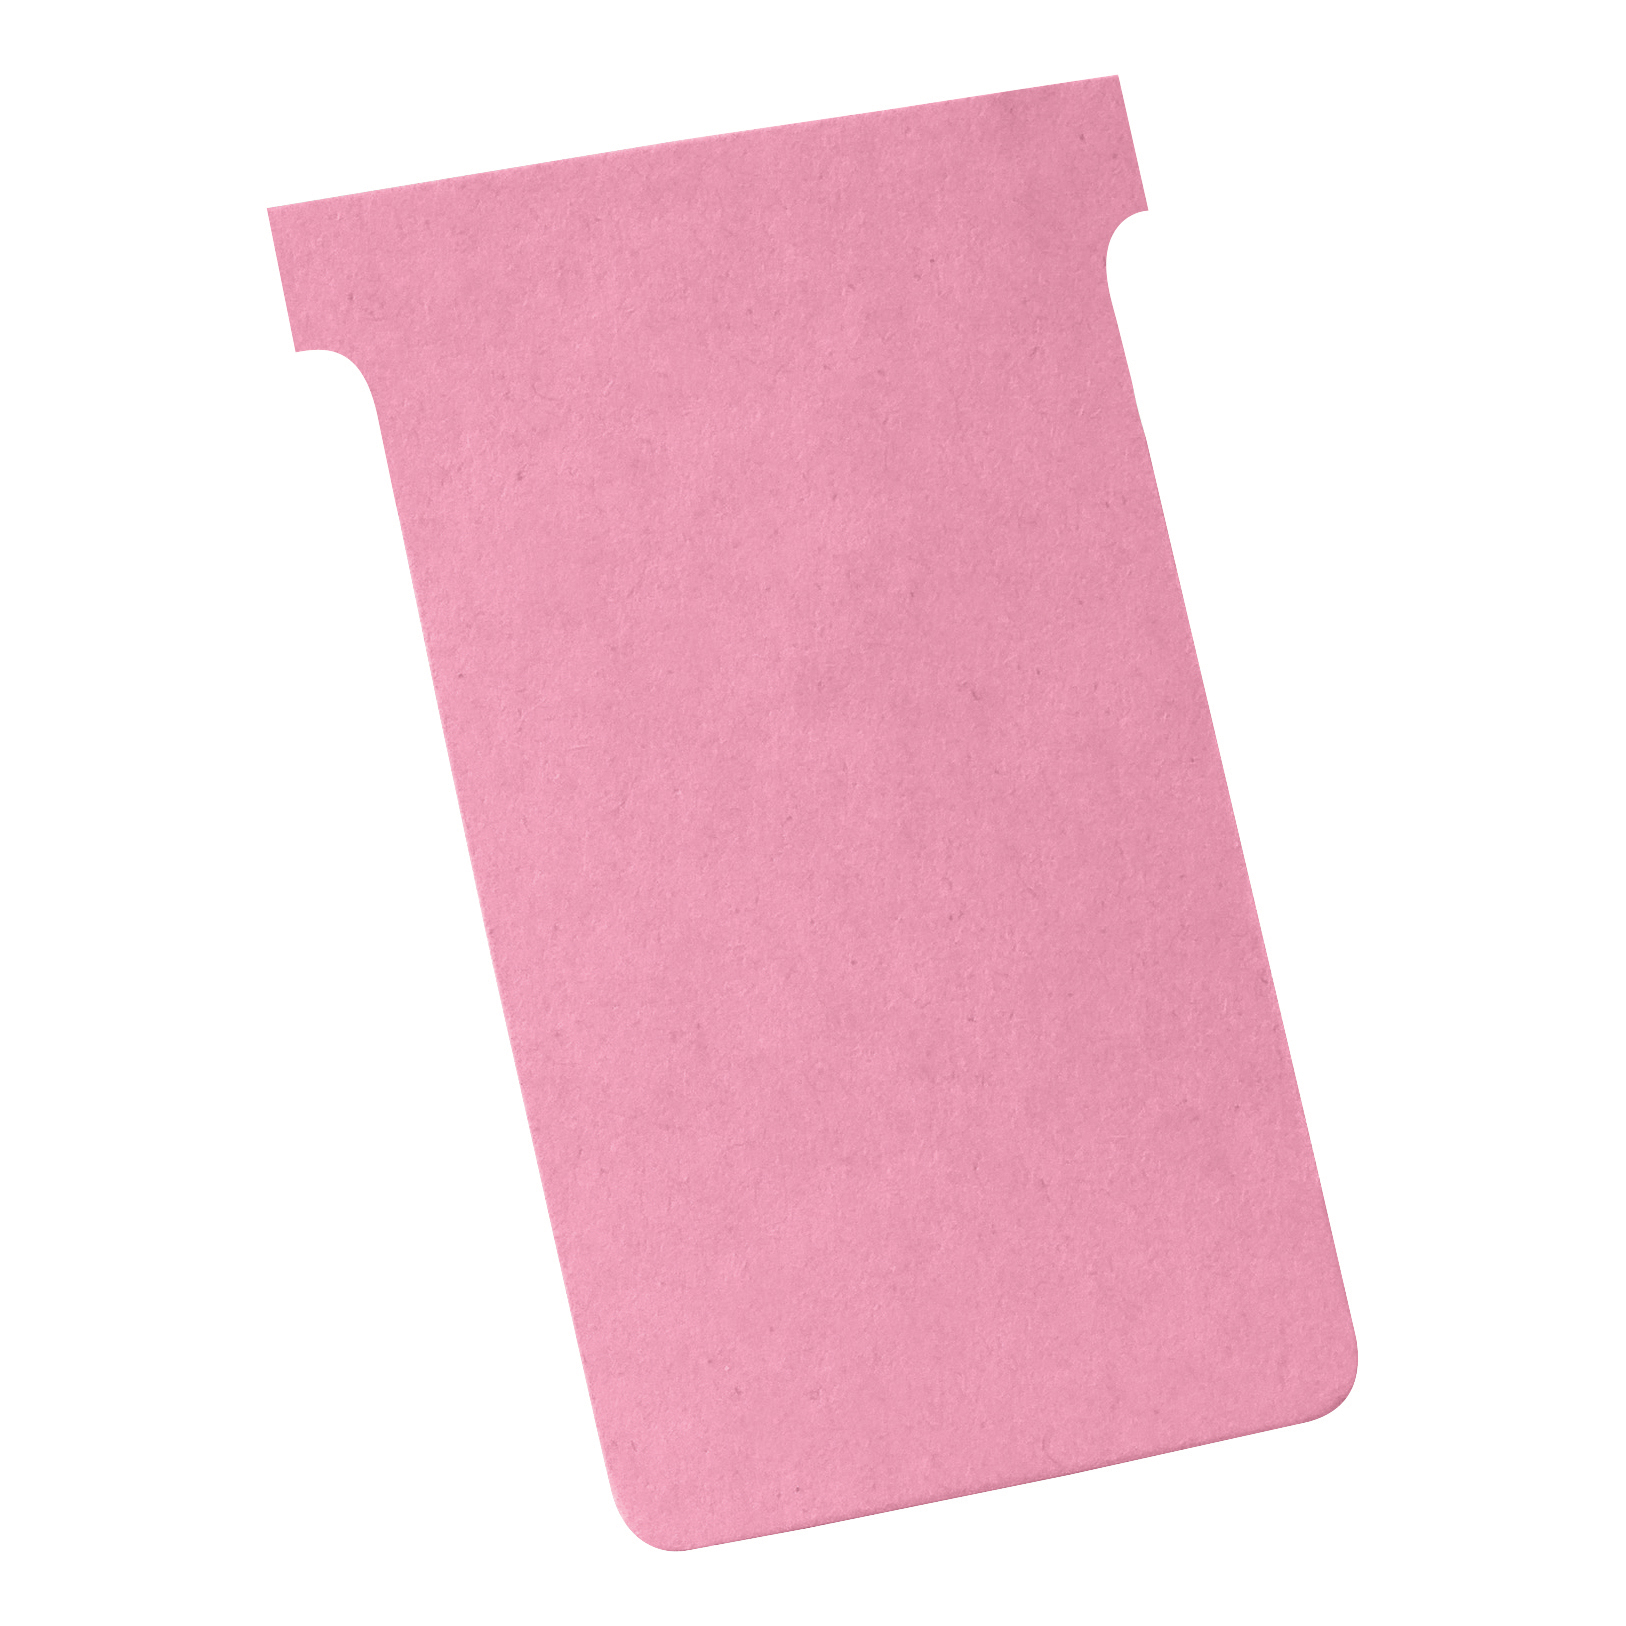 Nobo T-Cards 160gsm Tab Top 15mm W123x Bottom W112x Full H178mm Size 4 Pink Ref 2004008 Pack 100